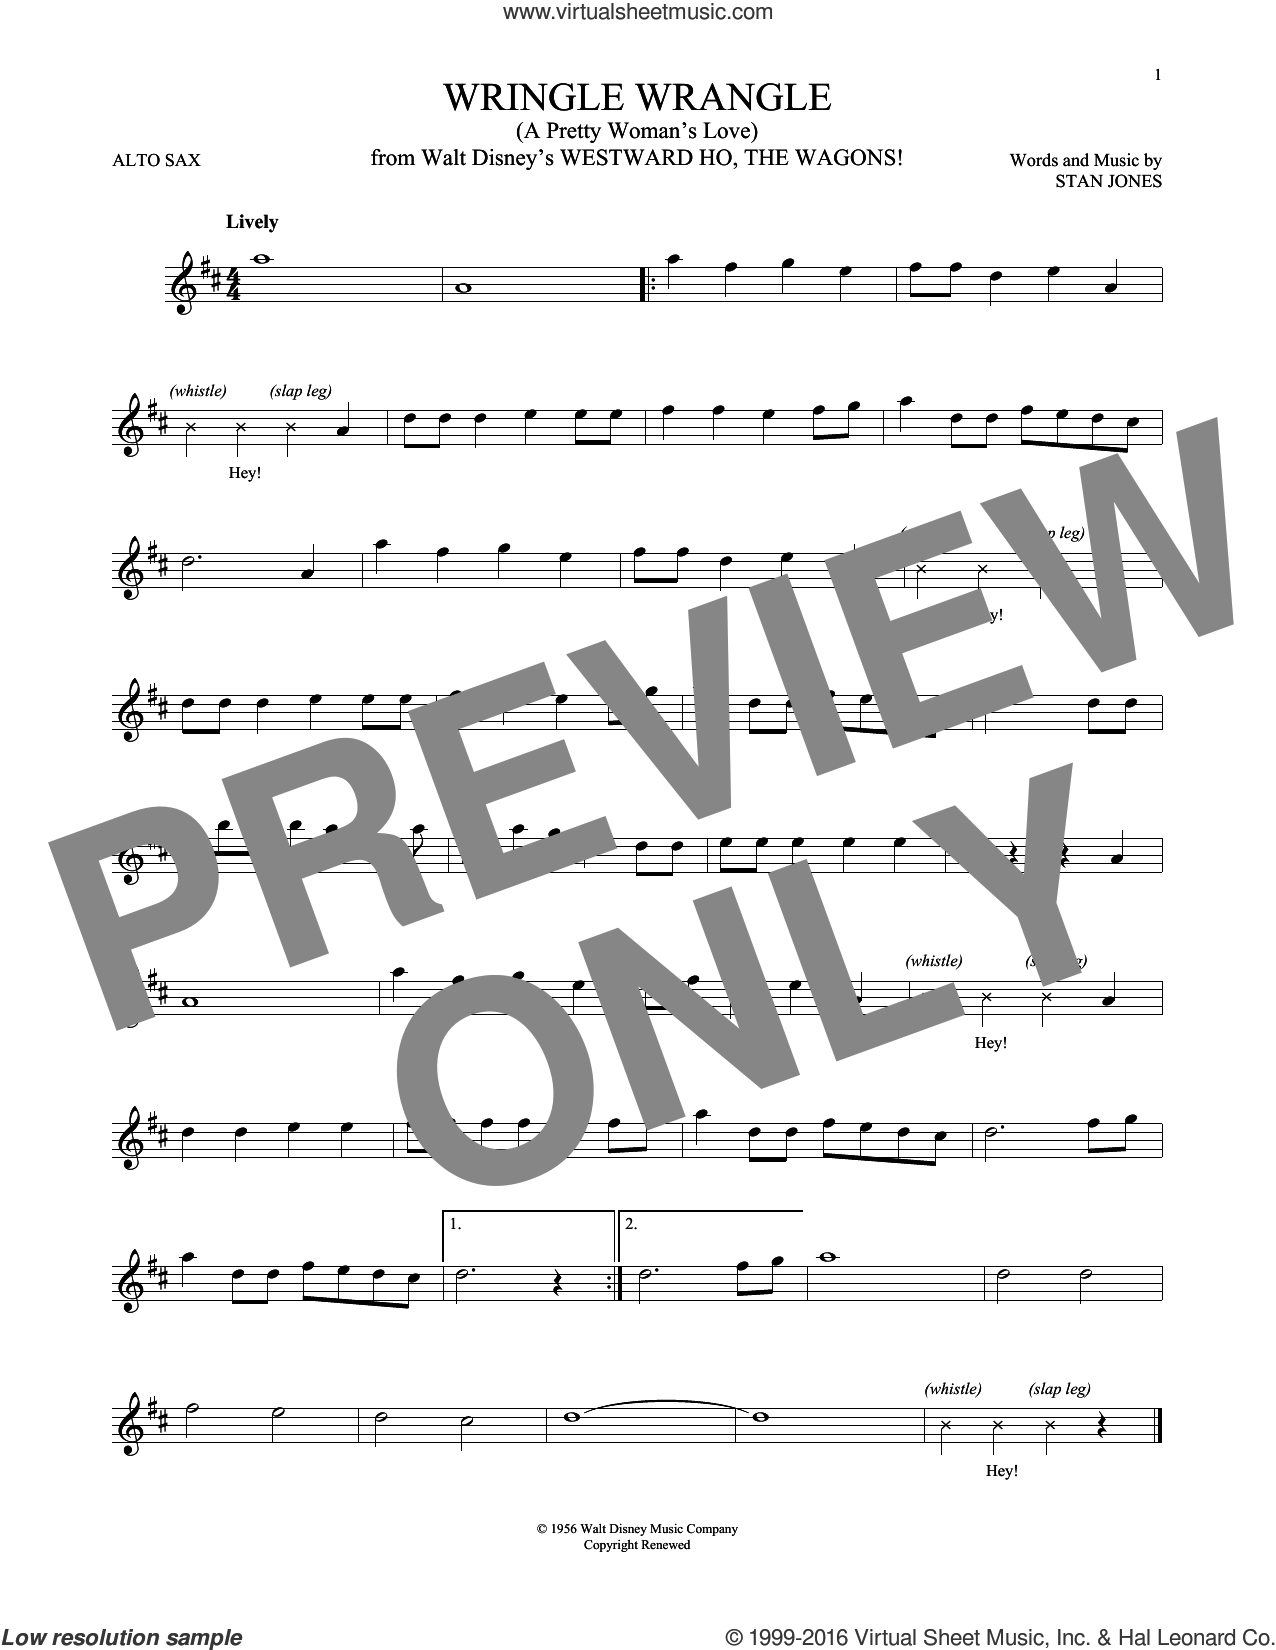 Wringle Wrangle (A Pretty Woman's Love) sheet music for alto saxophone solo by Stan Jones. Score Image Preview.